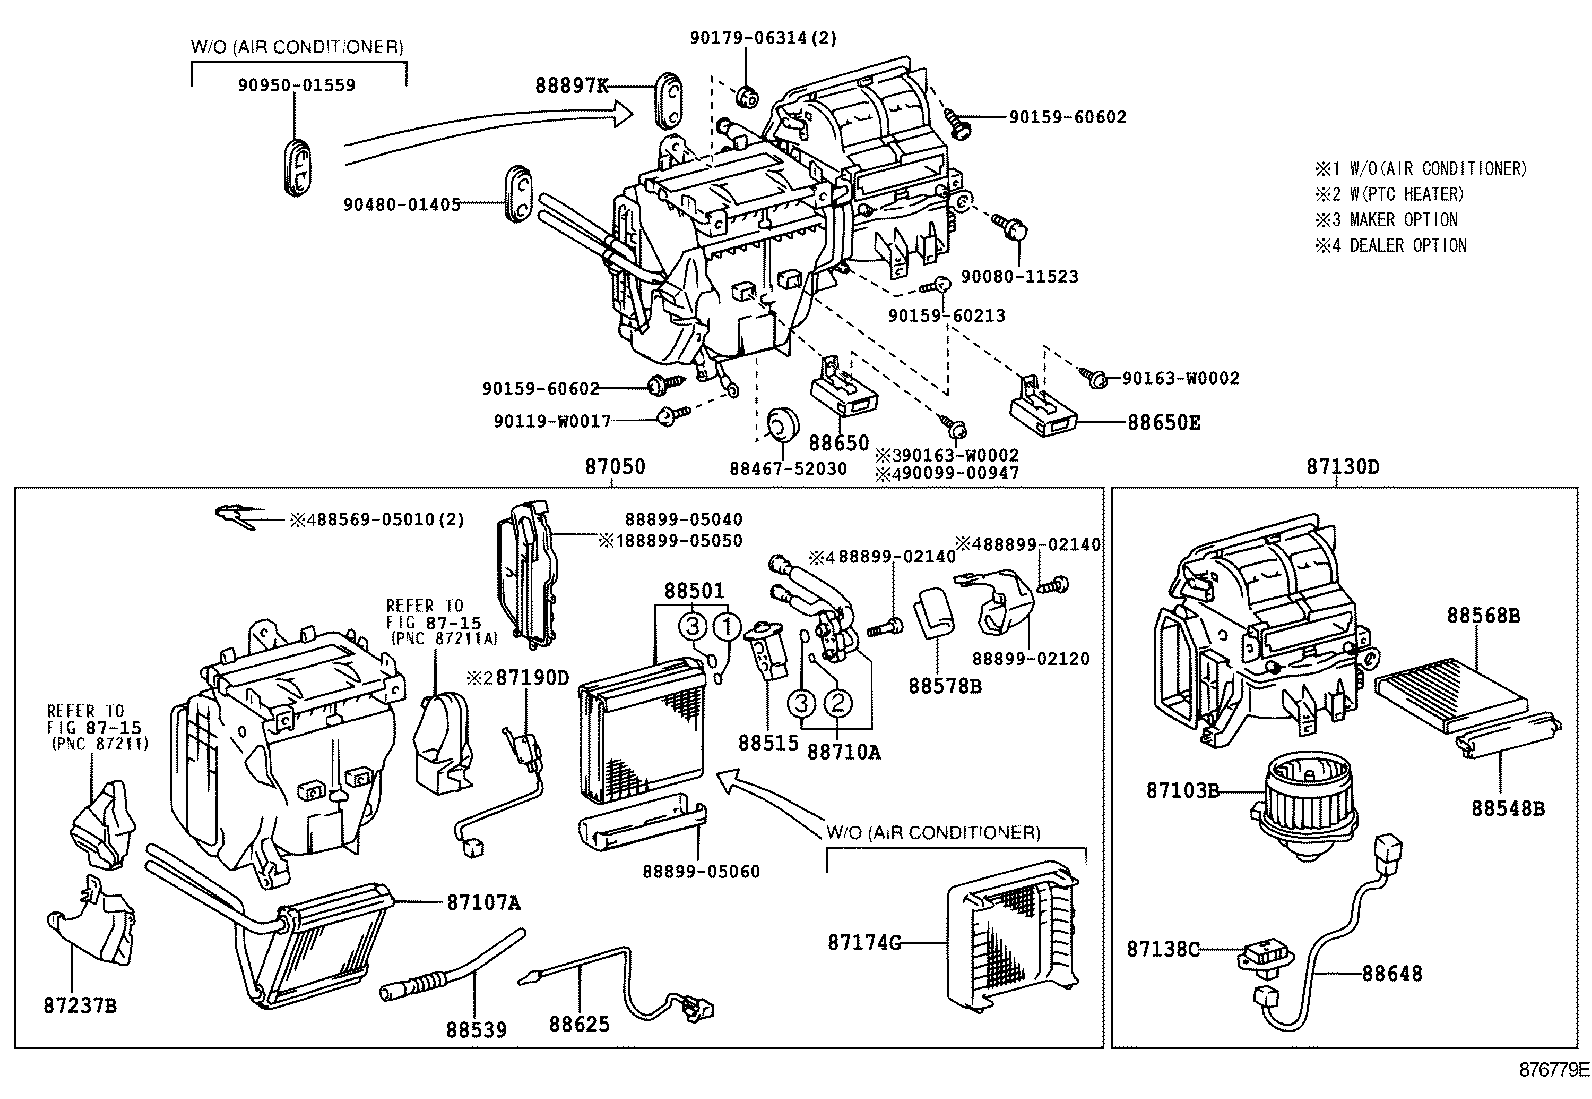 [WRG-9424] Toyota Corolla 2003 Air Conditioner Wiring Diagram